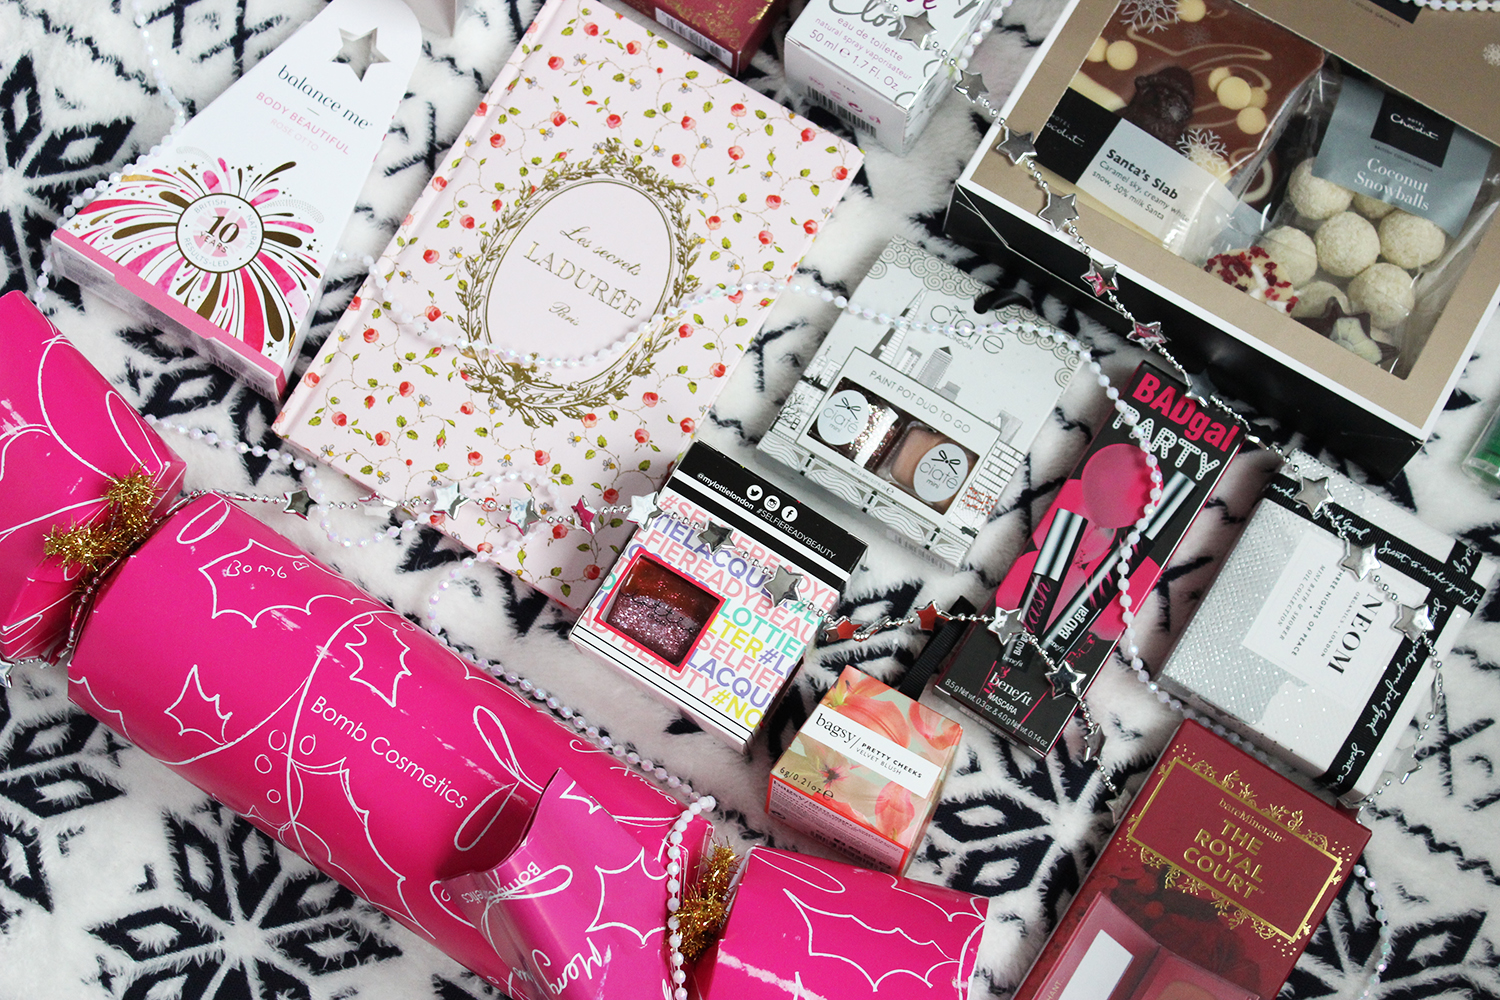 Affordable Christmas beauty gifts for her